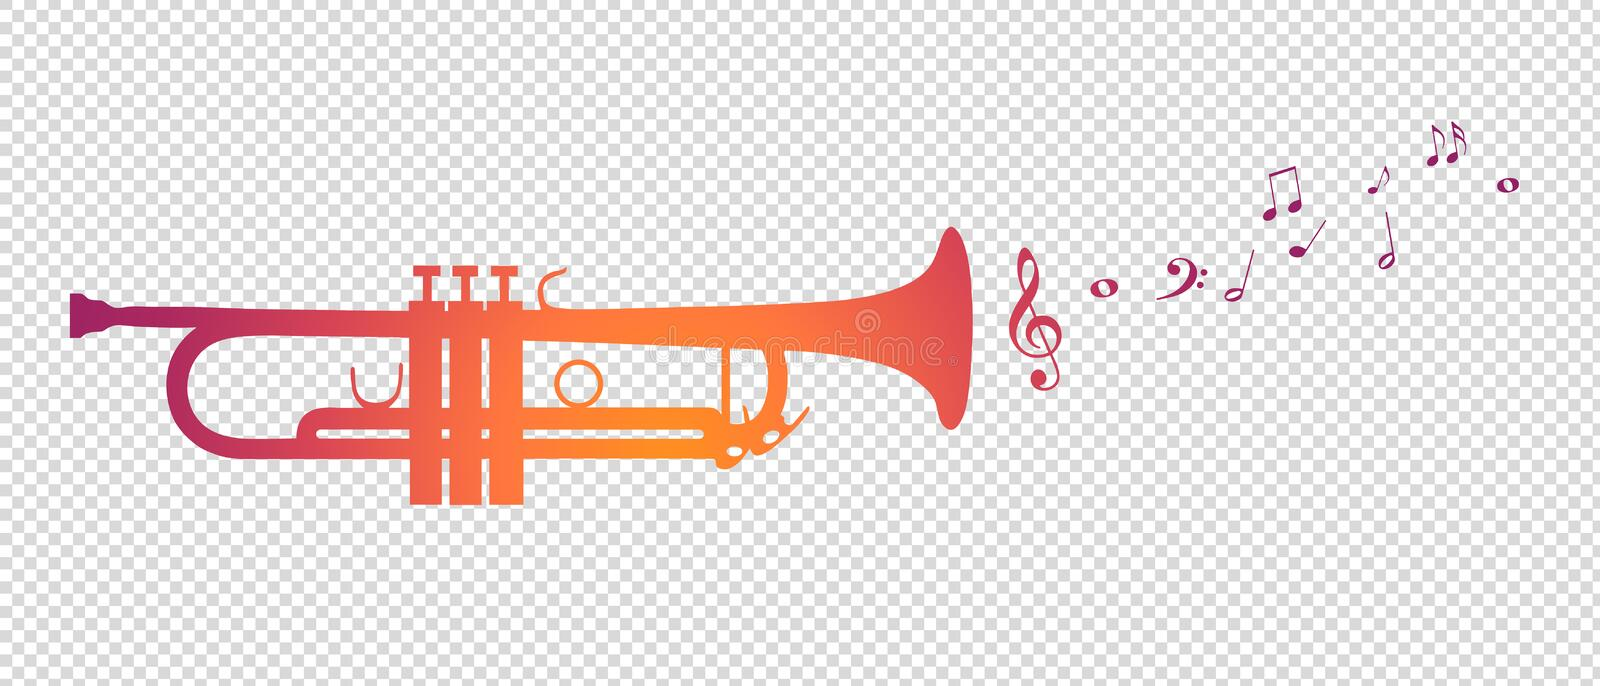 Trumpet Silhouette With Flying Notes - Vector Illustration - Isolated On Transparent Background vector illustration